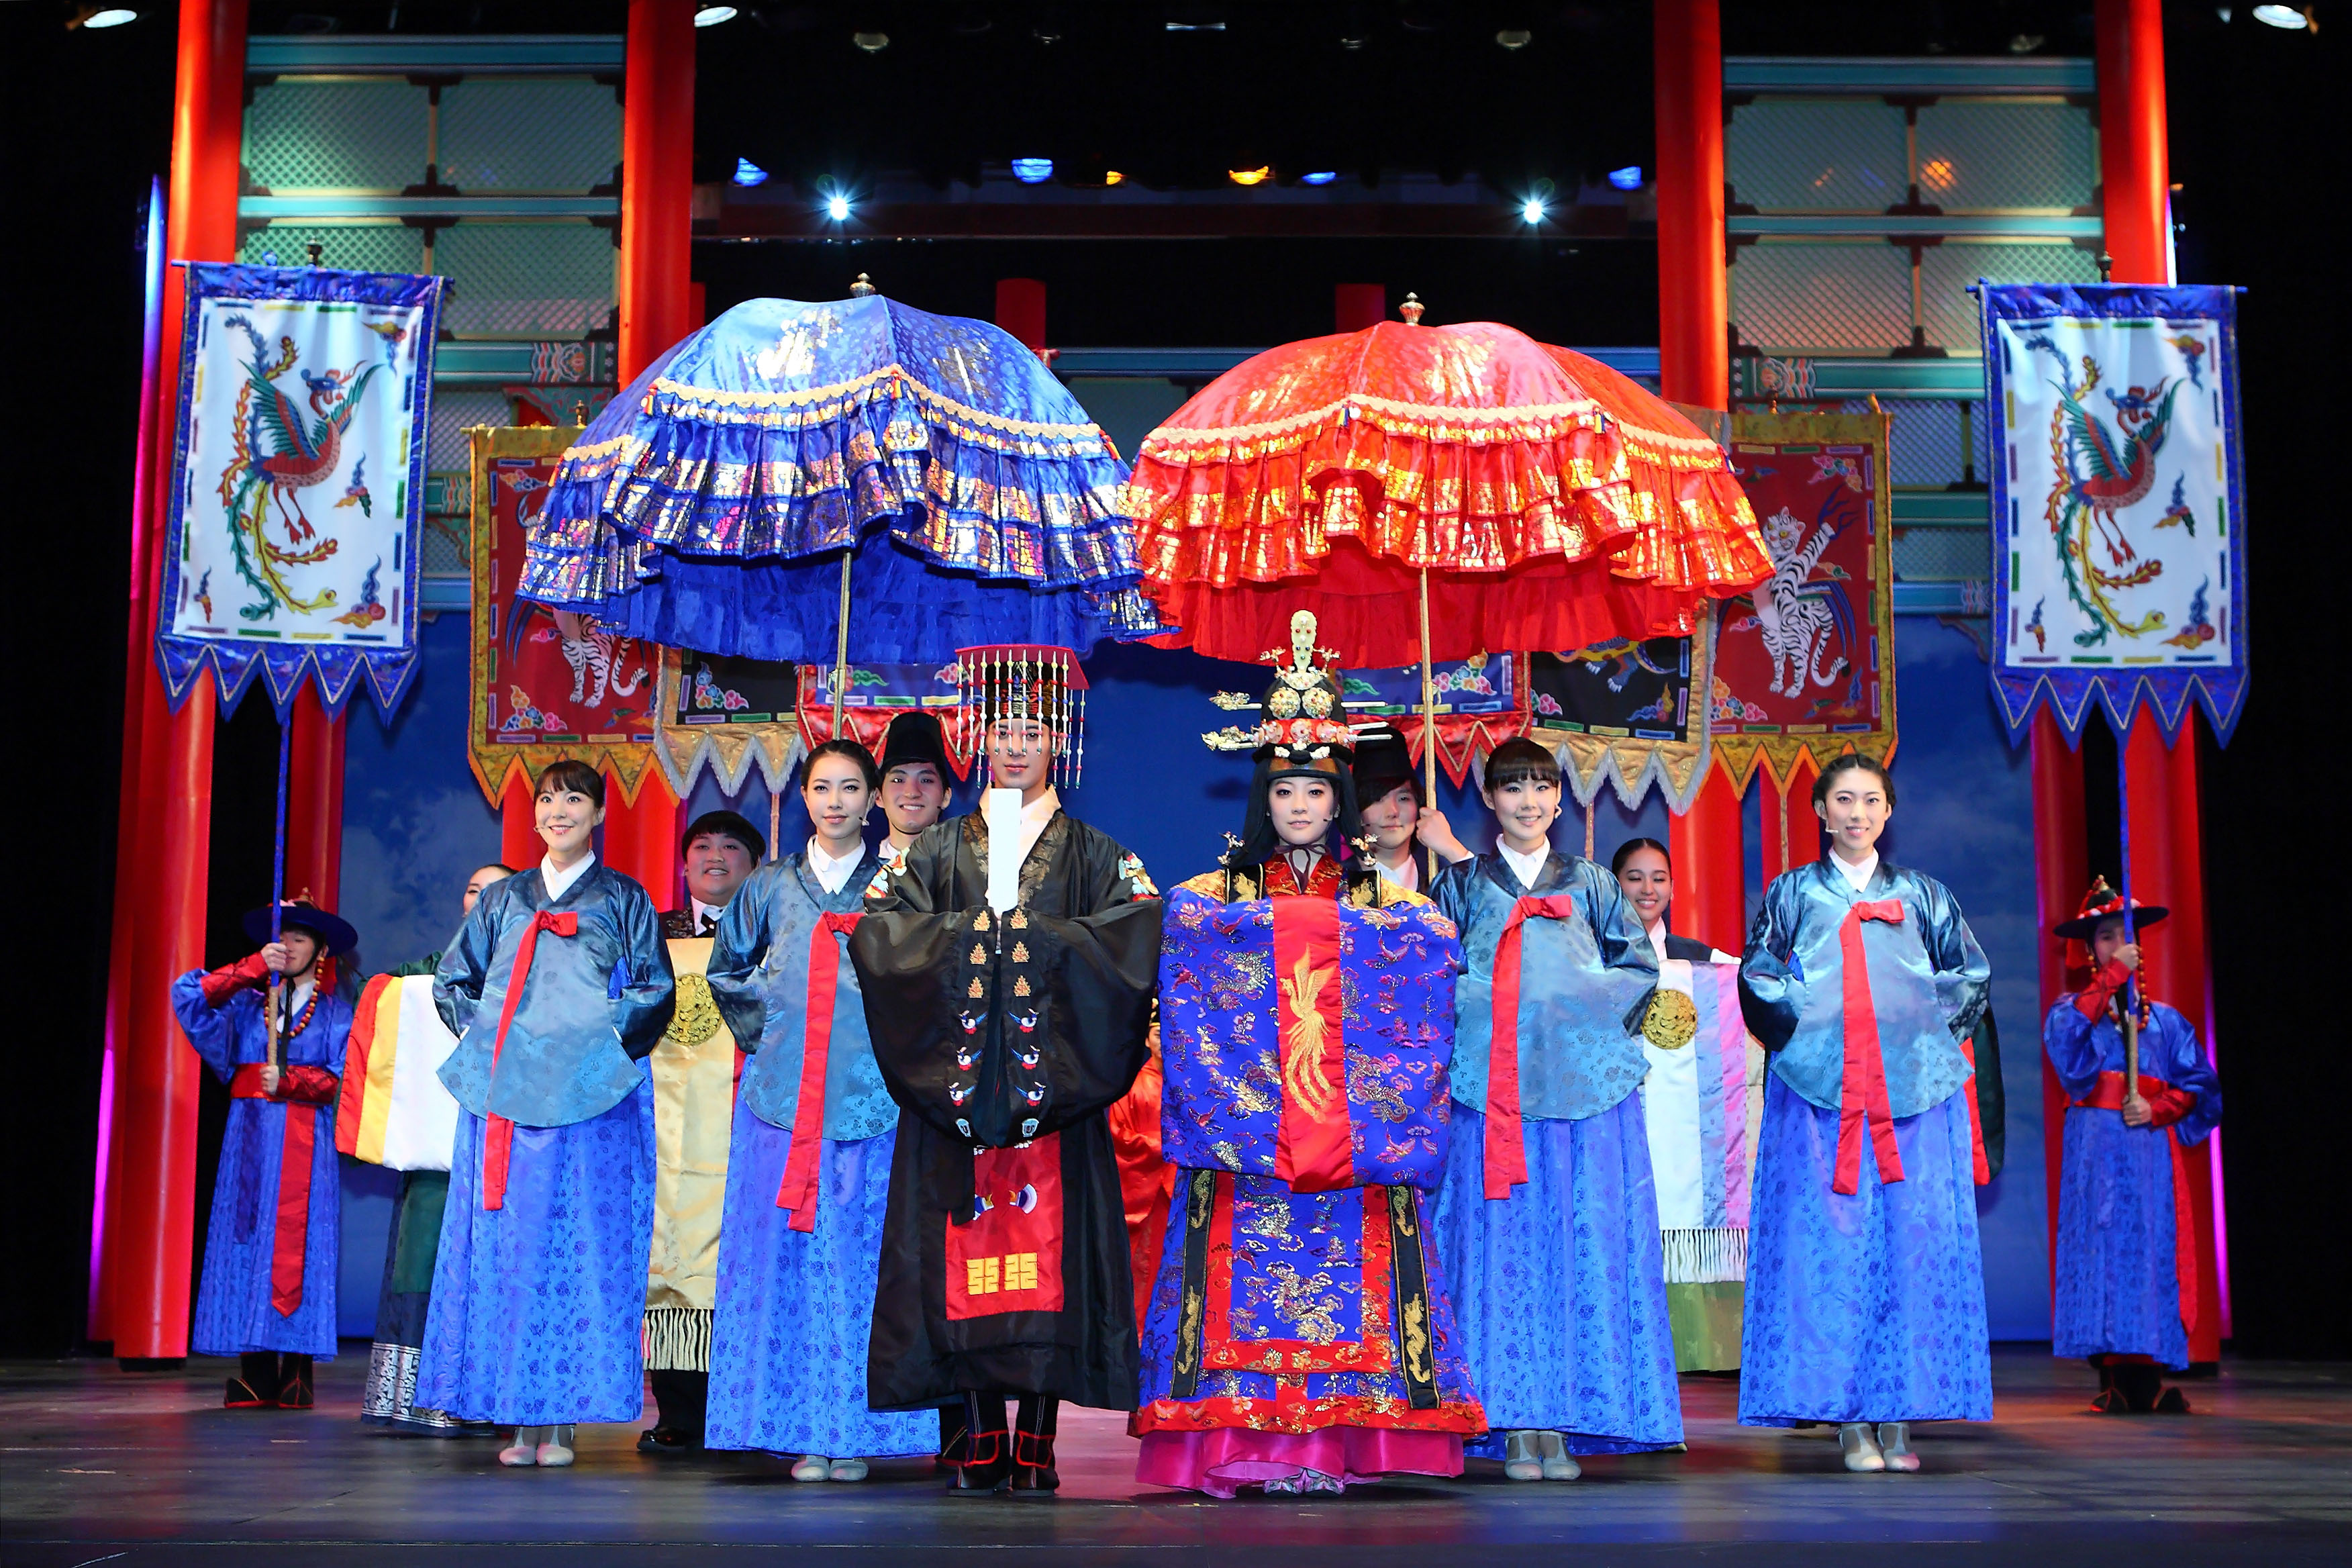 Riding the K-wave: The production 'Kun (Goong) . Love in a Palace' was adapted from a South Korean comic that became a popular TV show. | CREATIVE LEADERS GROUP EIGHT